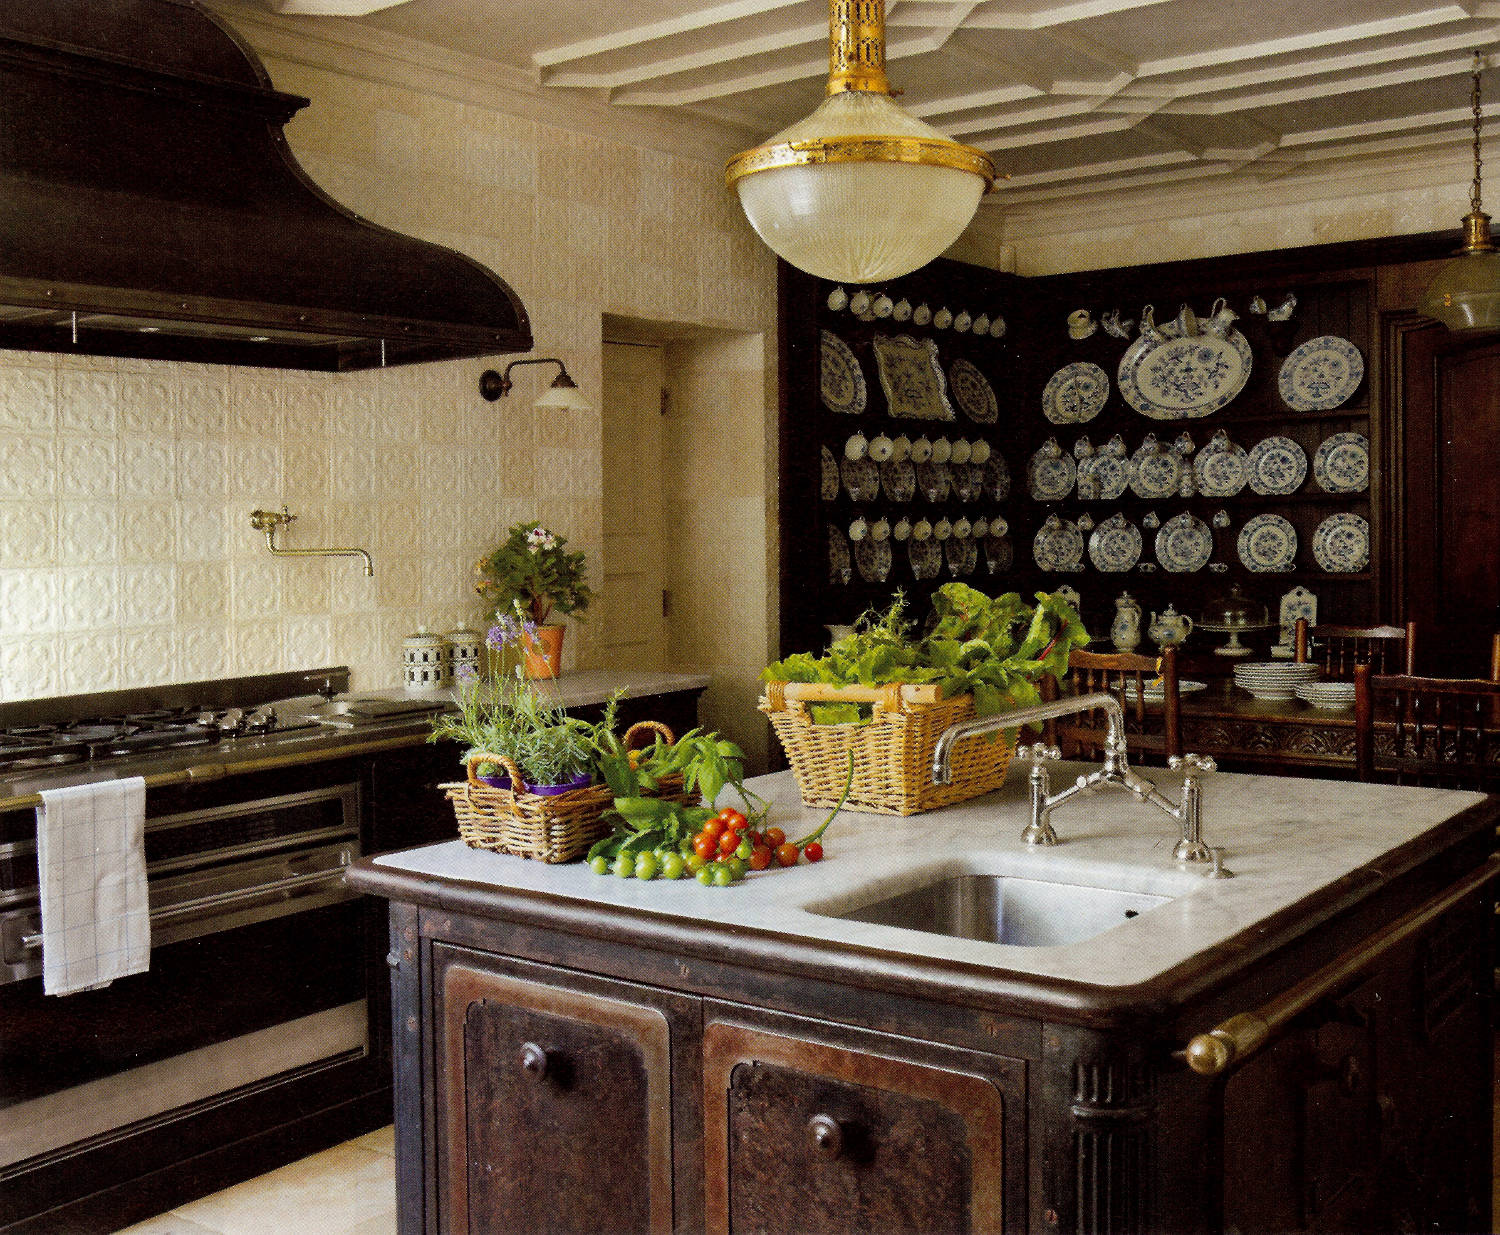 Fullsize Of Kitchen Islands With Stoves